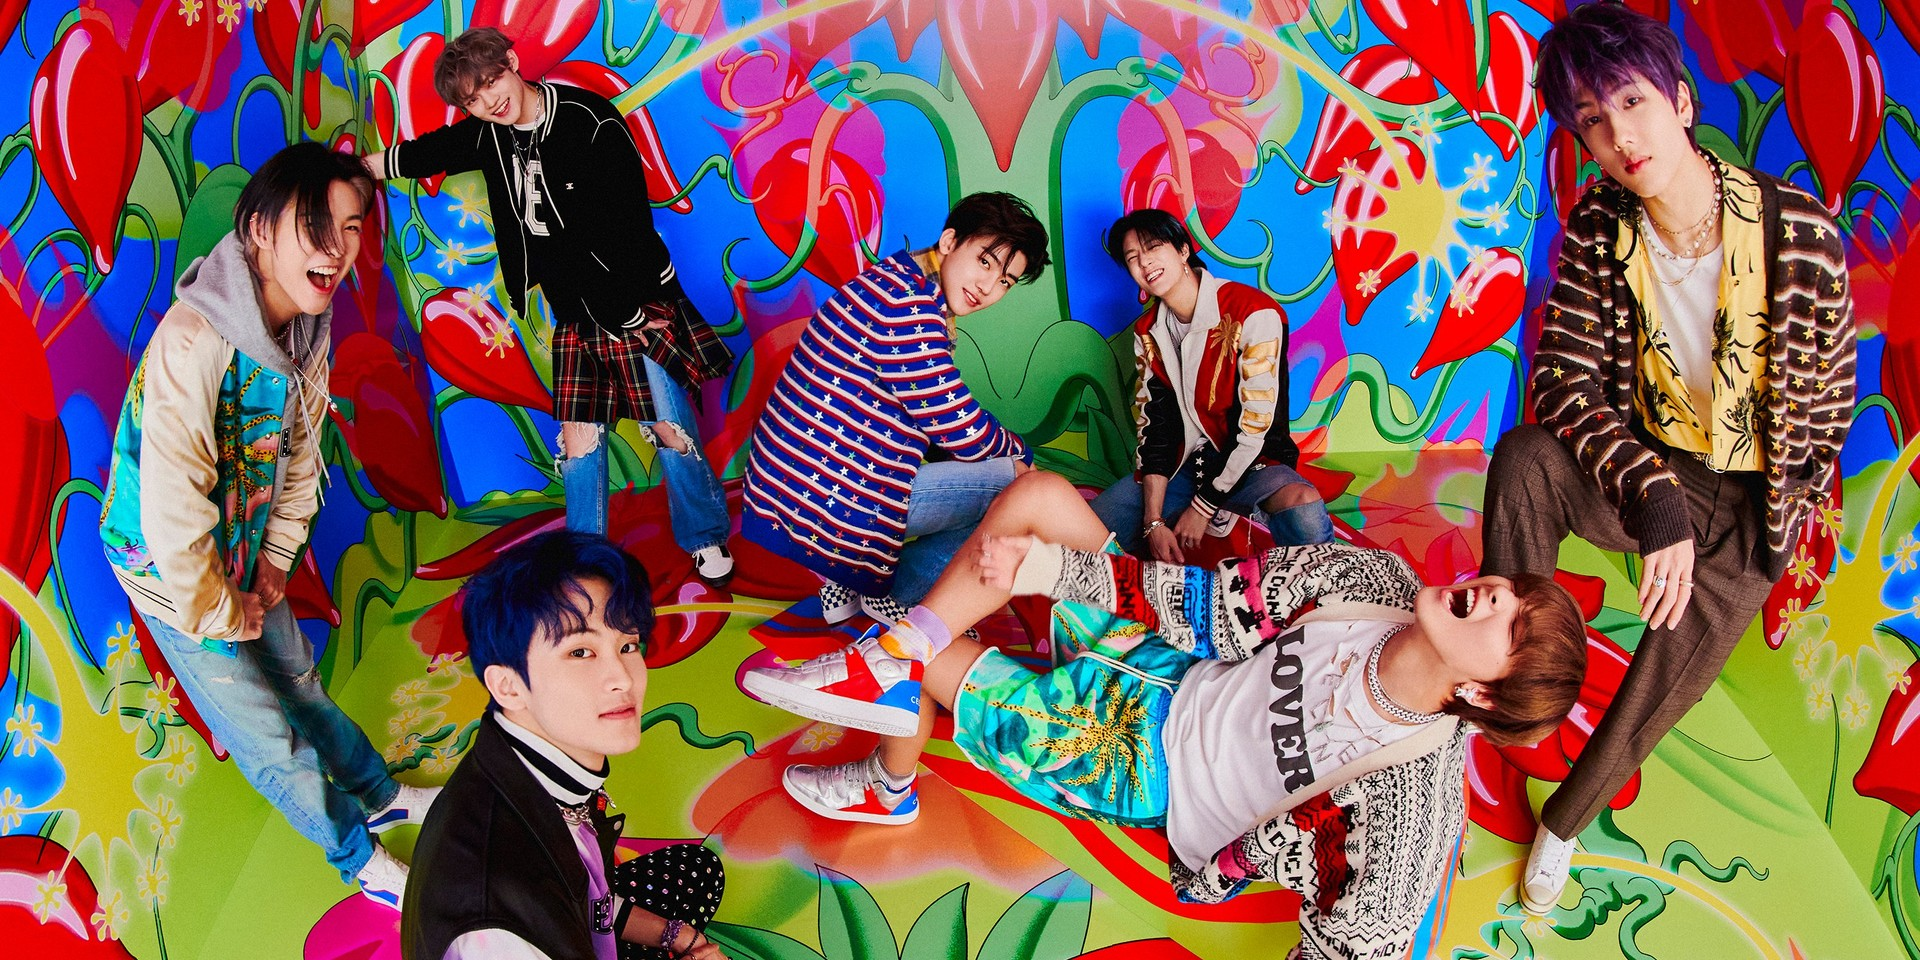 NCT DREAM's first full-length album 맛 (Hot Sauce) is coming this May |